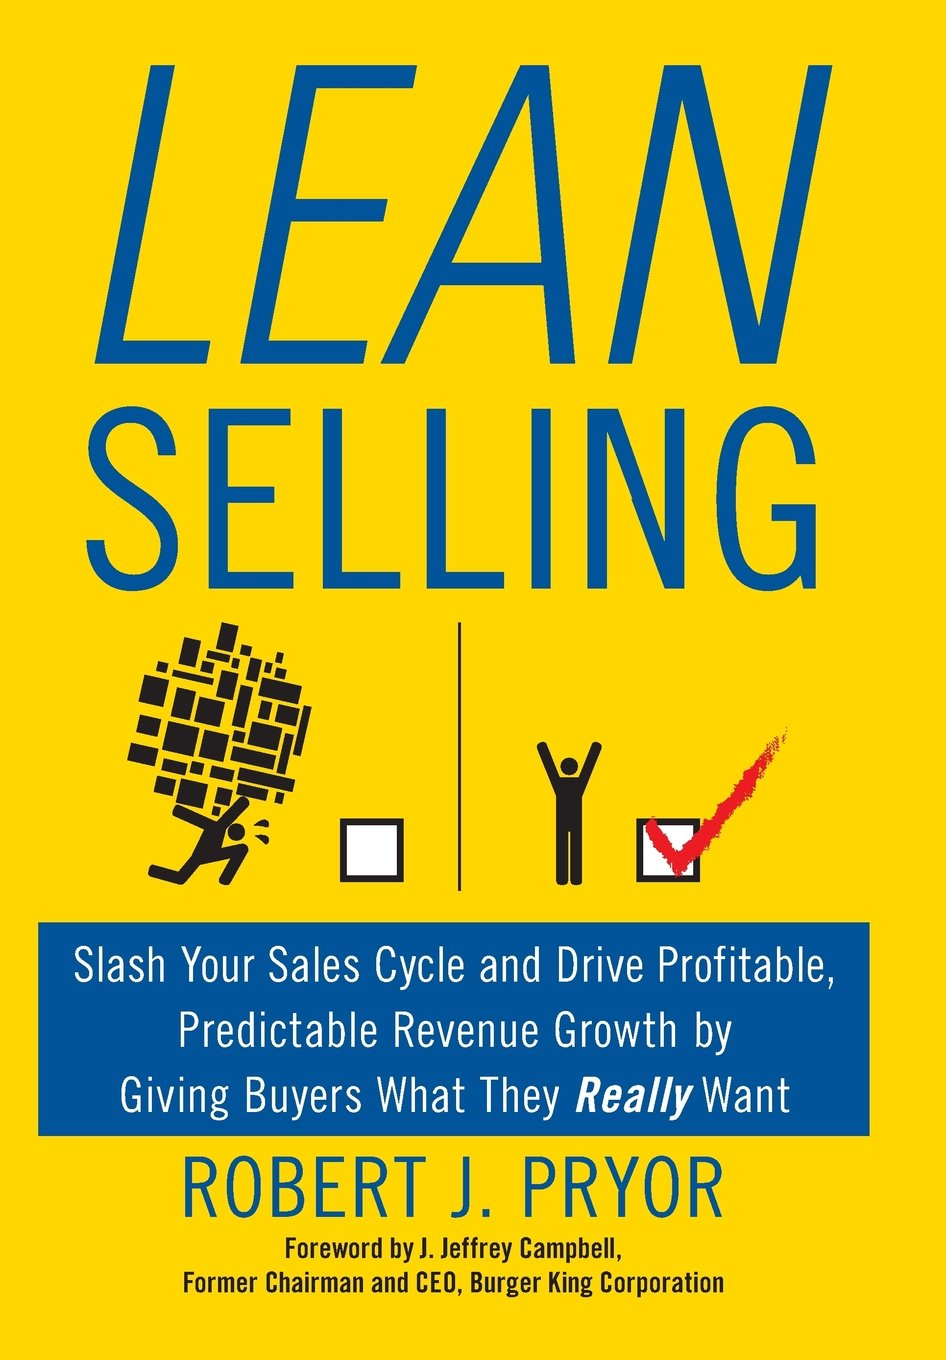 Download Lean Selling: Slash Your Sales Cycle and Drive Profitable, Predictable Revenue Growth by Giving Buyers What They Really Want PDF